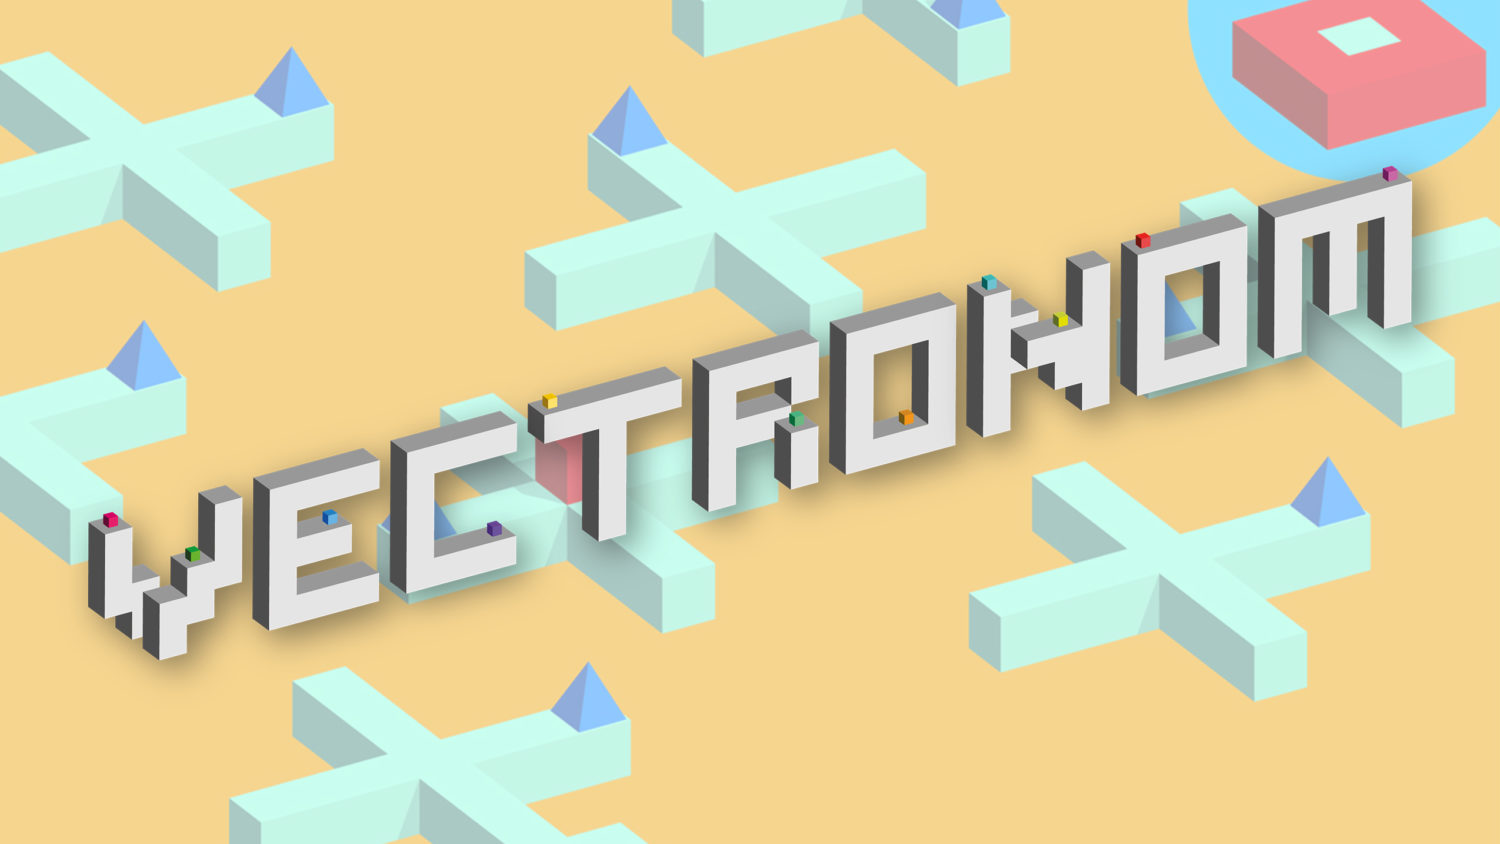 vectronom review nintendo switch